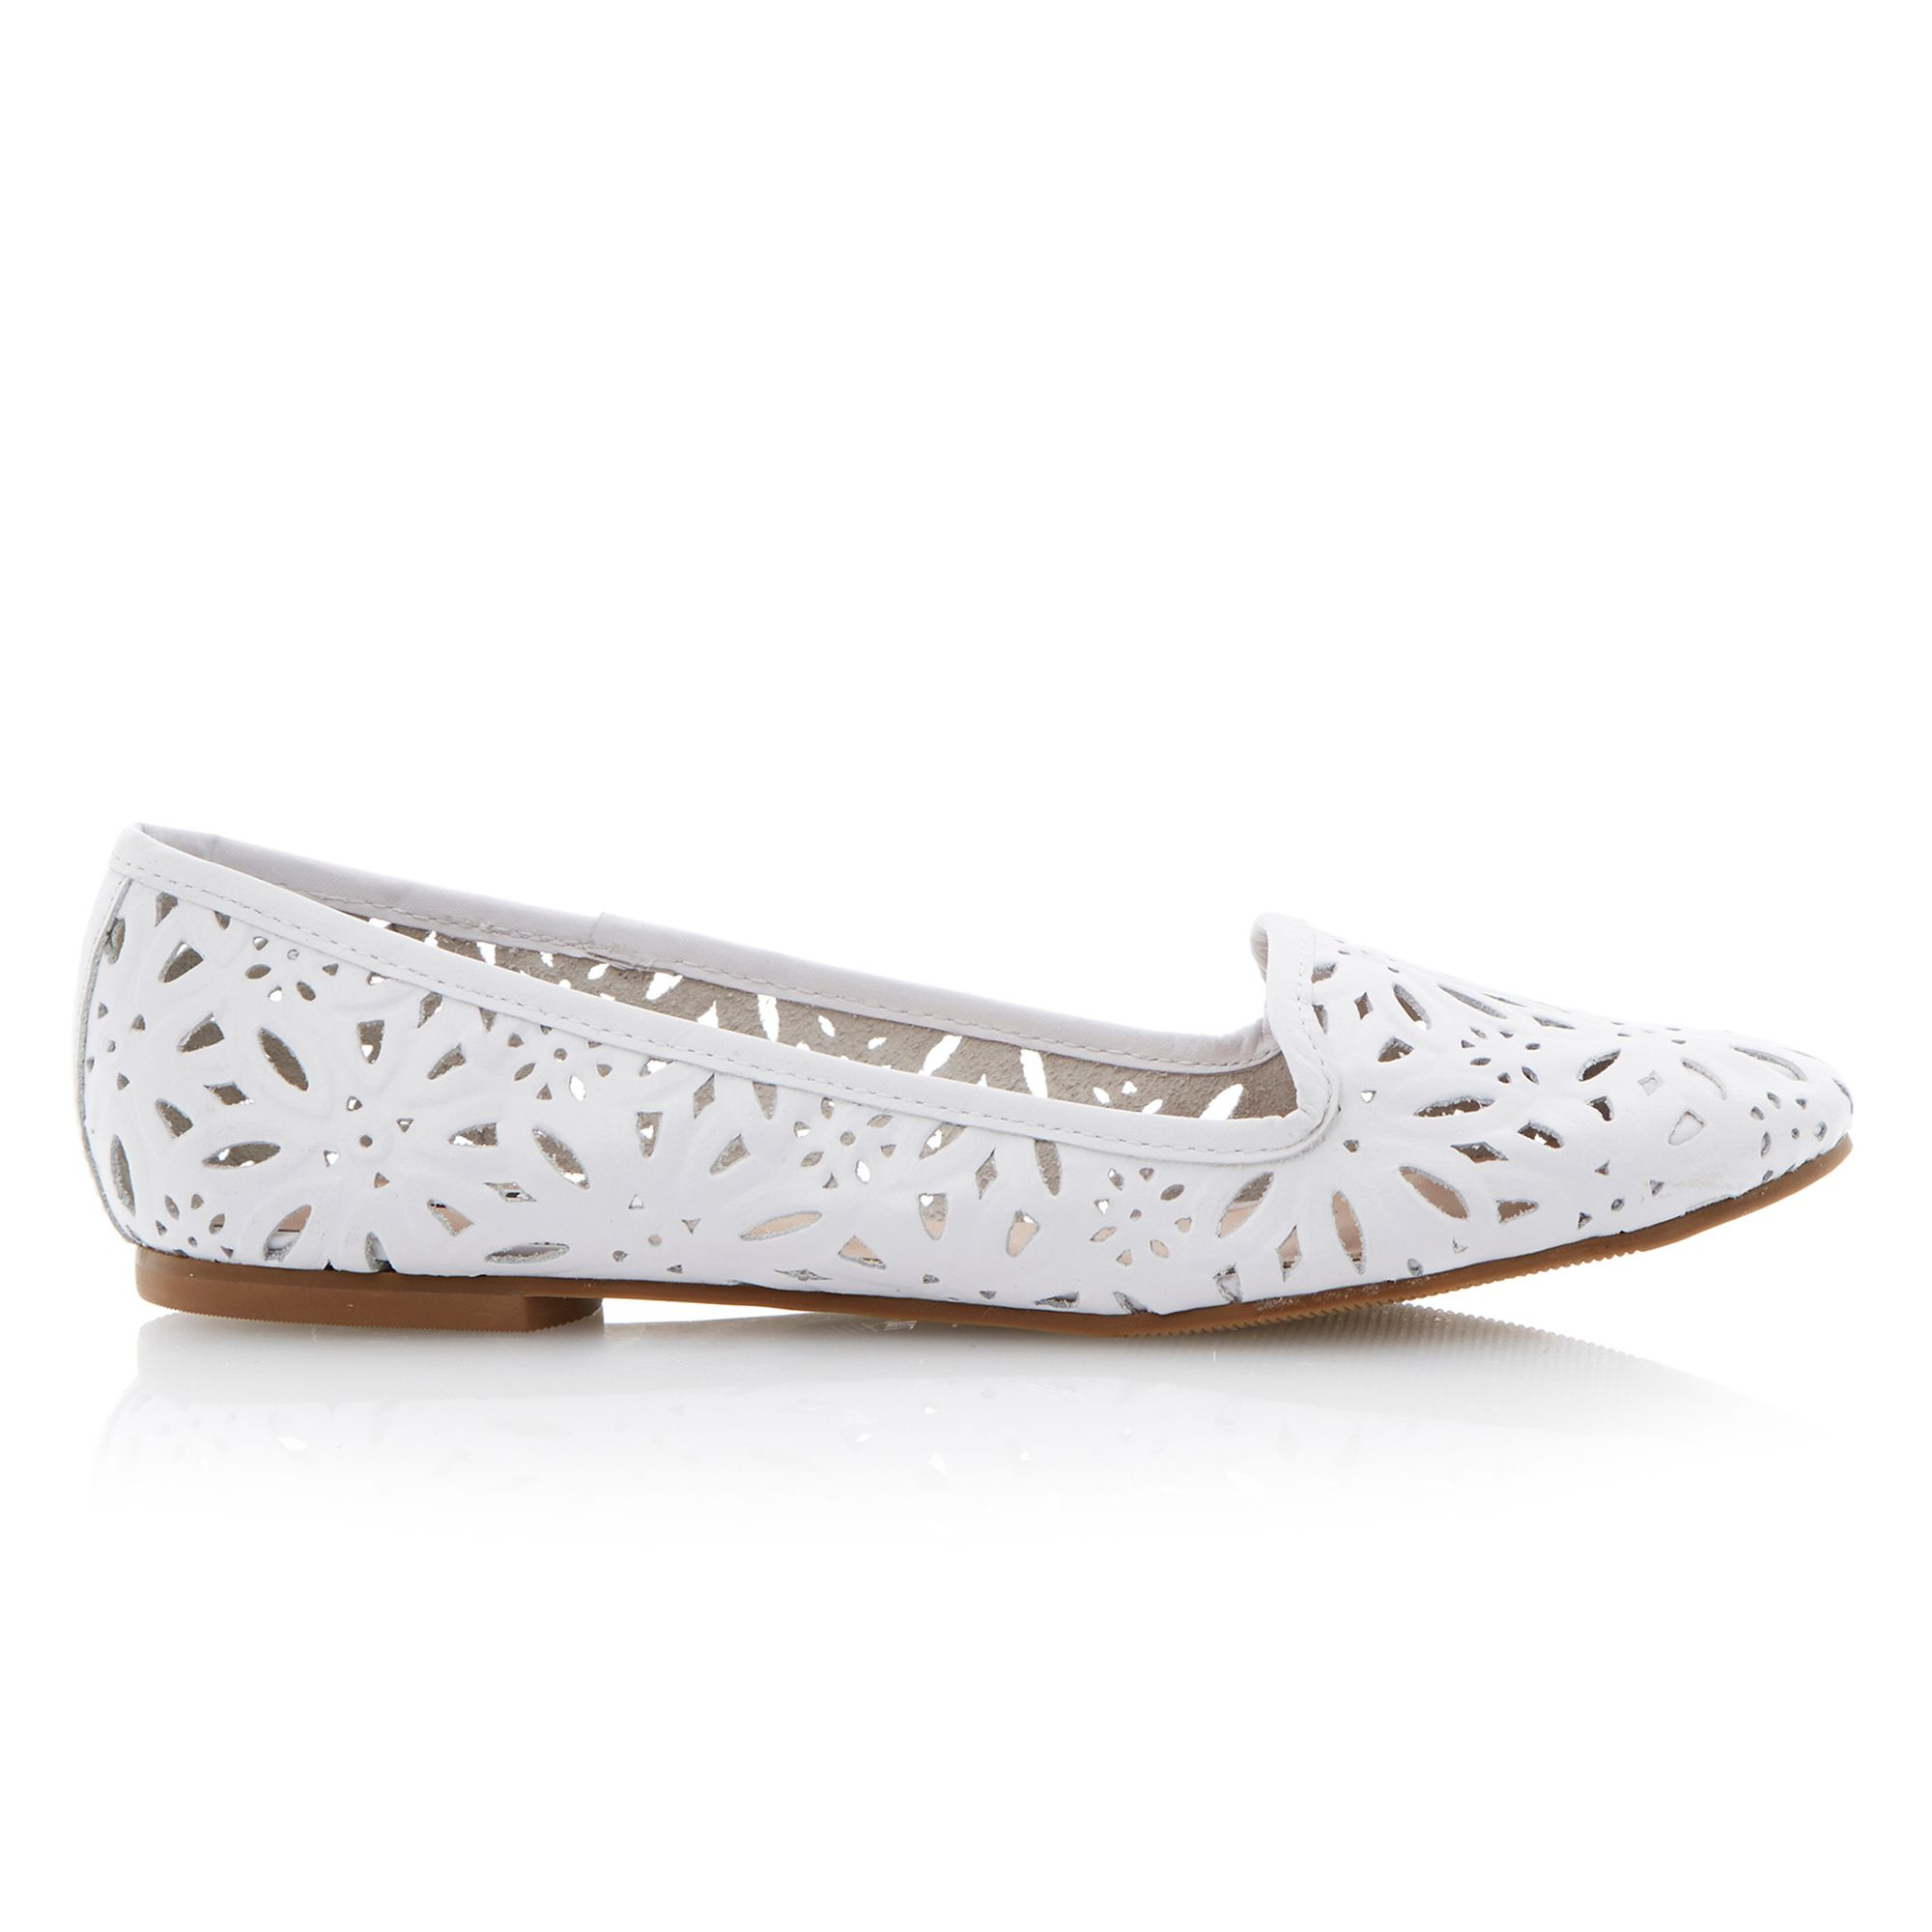 Dune Londres Laser Cut Leather Flats In White Lyst